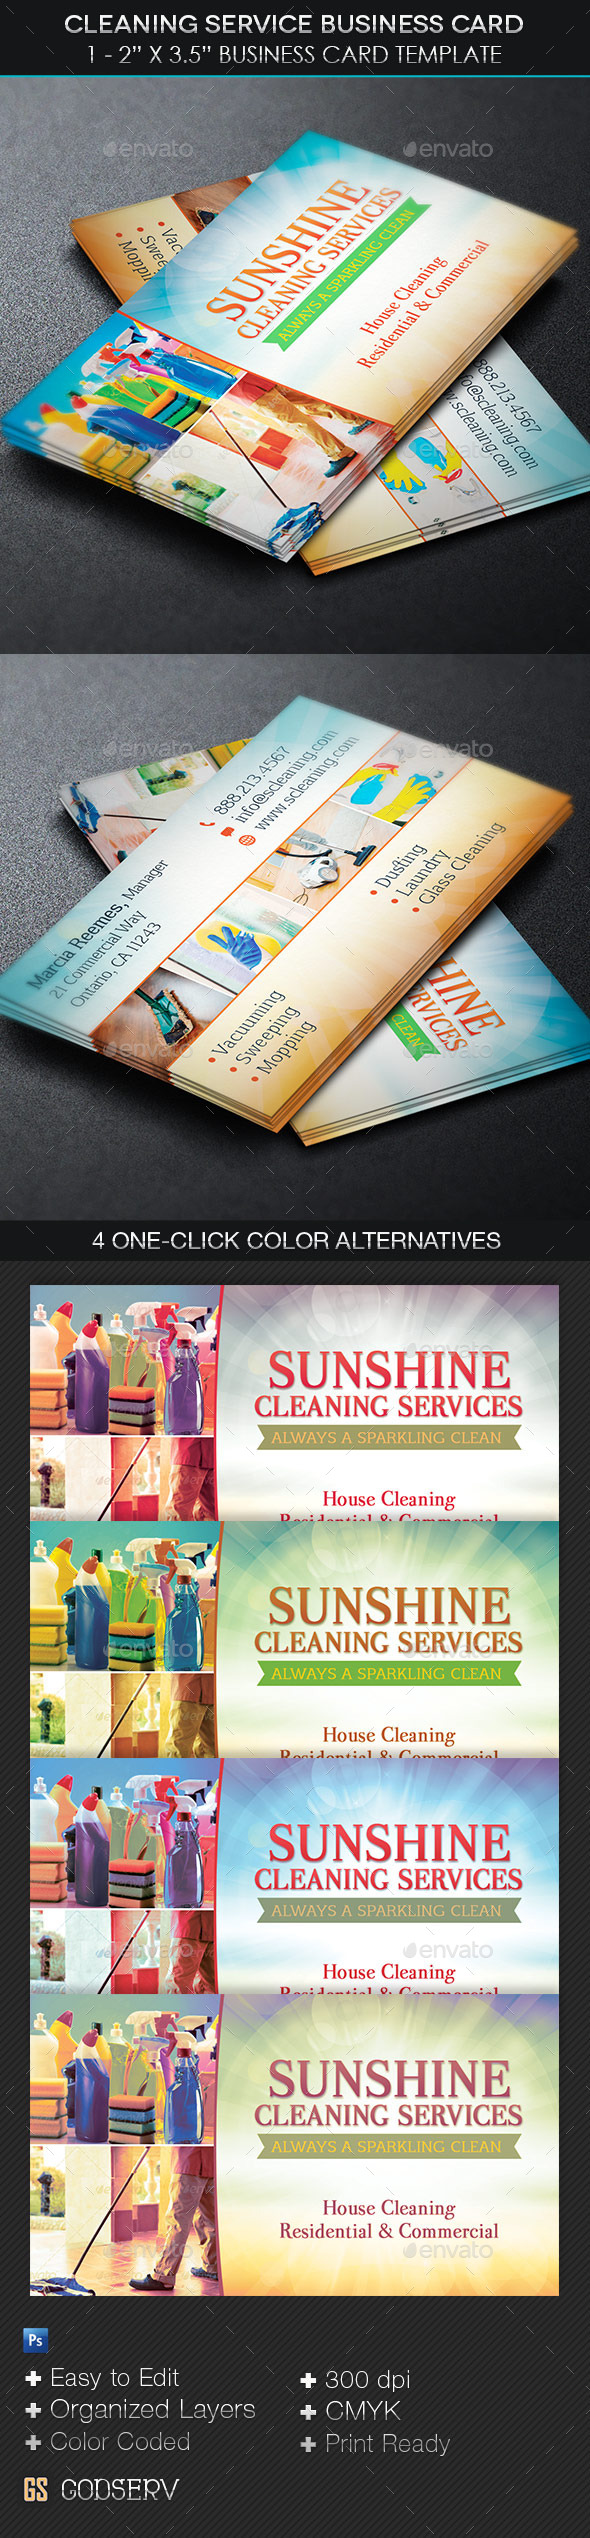 Cleaning Service Business Card Template by Godserv | GraphicRiver